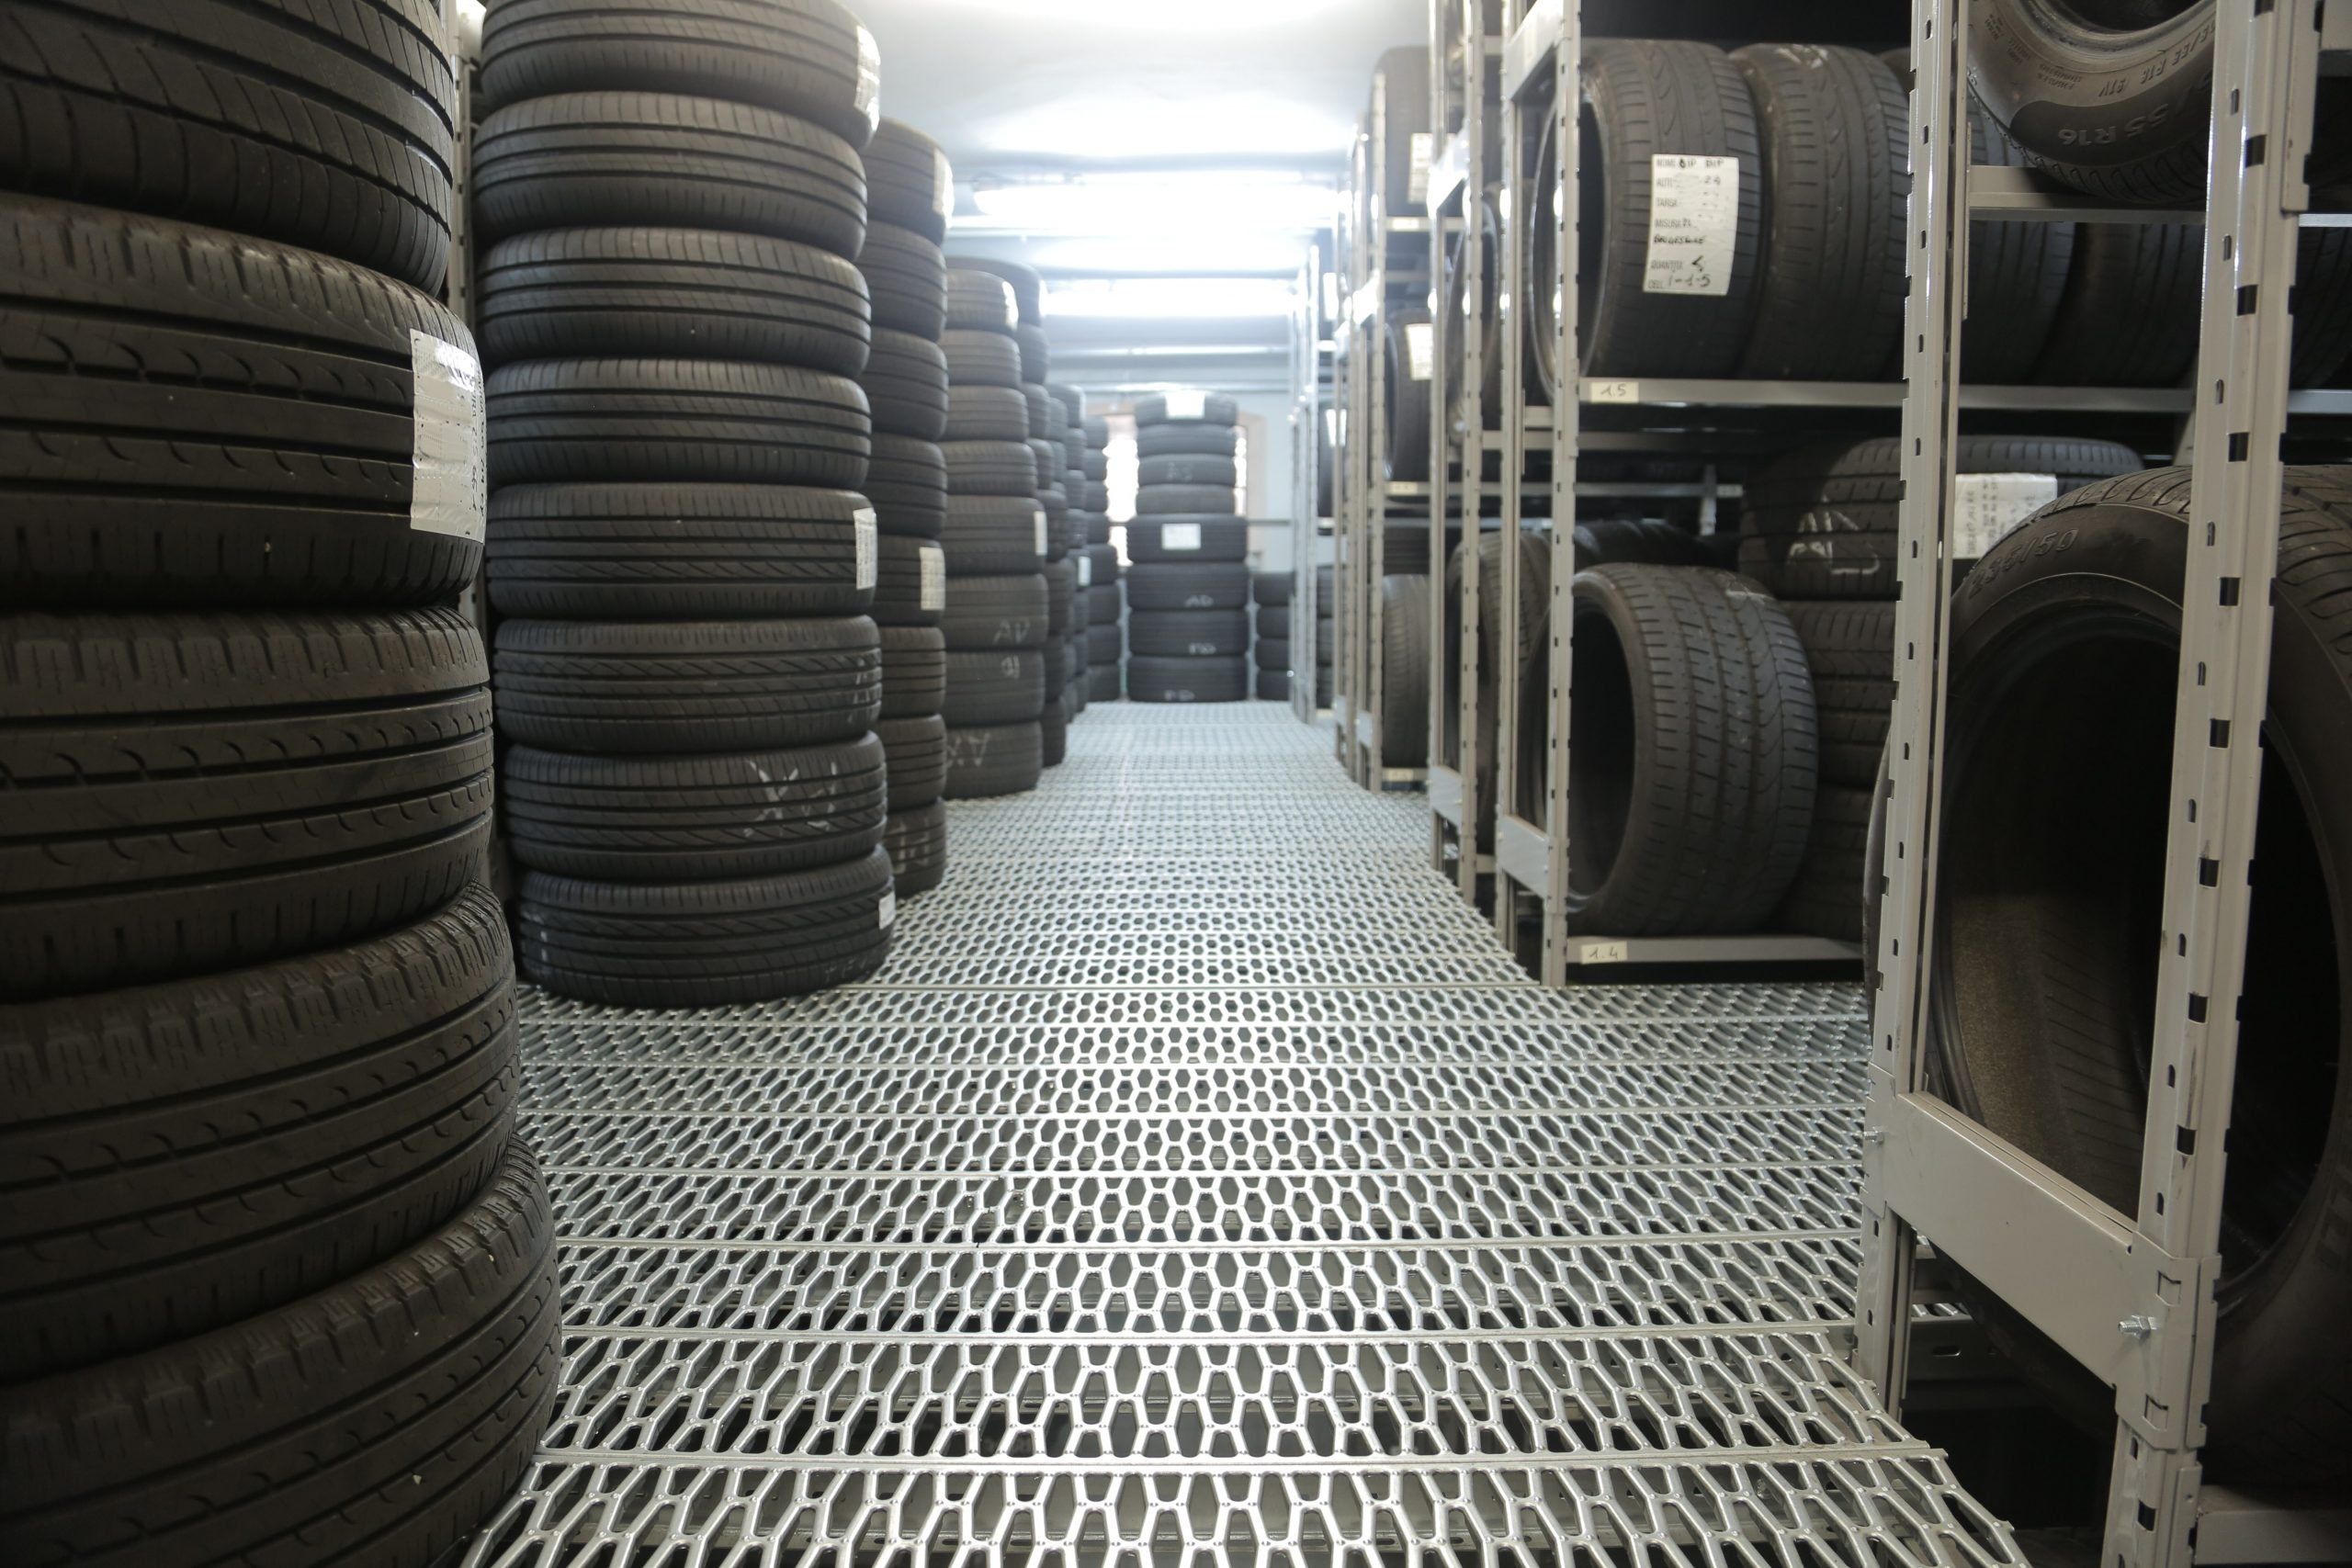 How to Store Tires